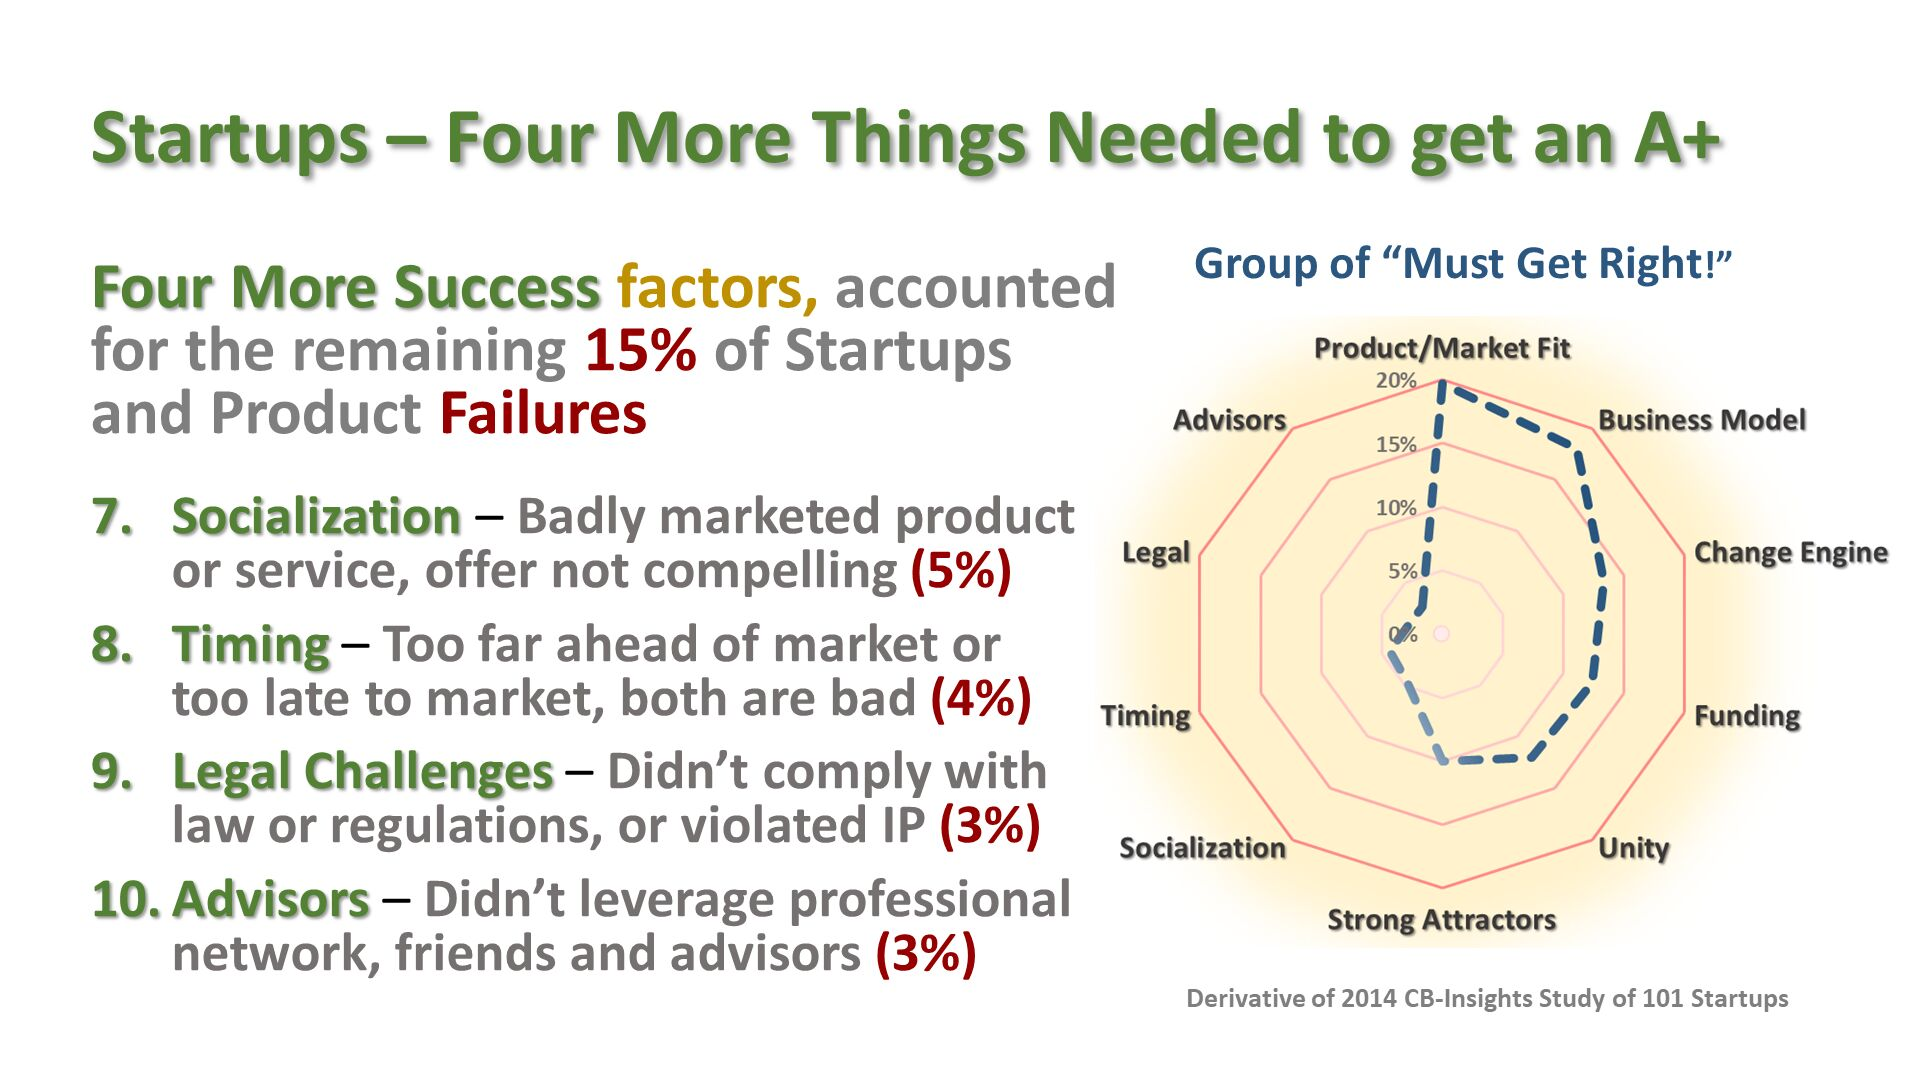 "Startups – Four More Things Needed to get an A+ . Four More Success factors, accounted for the remaining 15% of Startups and Product Failures Socialization – Badly marketed product or service, offer not compelling (5%) Timing – Too far ahead of market or too late to market, both are bad (4%) Legal Challenges – Didn't comply with law or regulations, or violated IP (3%) Advisors – Didn't leverage professional network, friends and advisors (3%) . Group of ""Must Get Right!"". Derivative of 2014 CB-Insights Study of 101 Startups ."